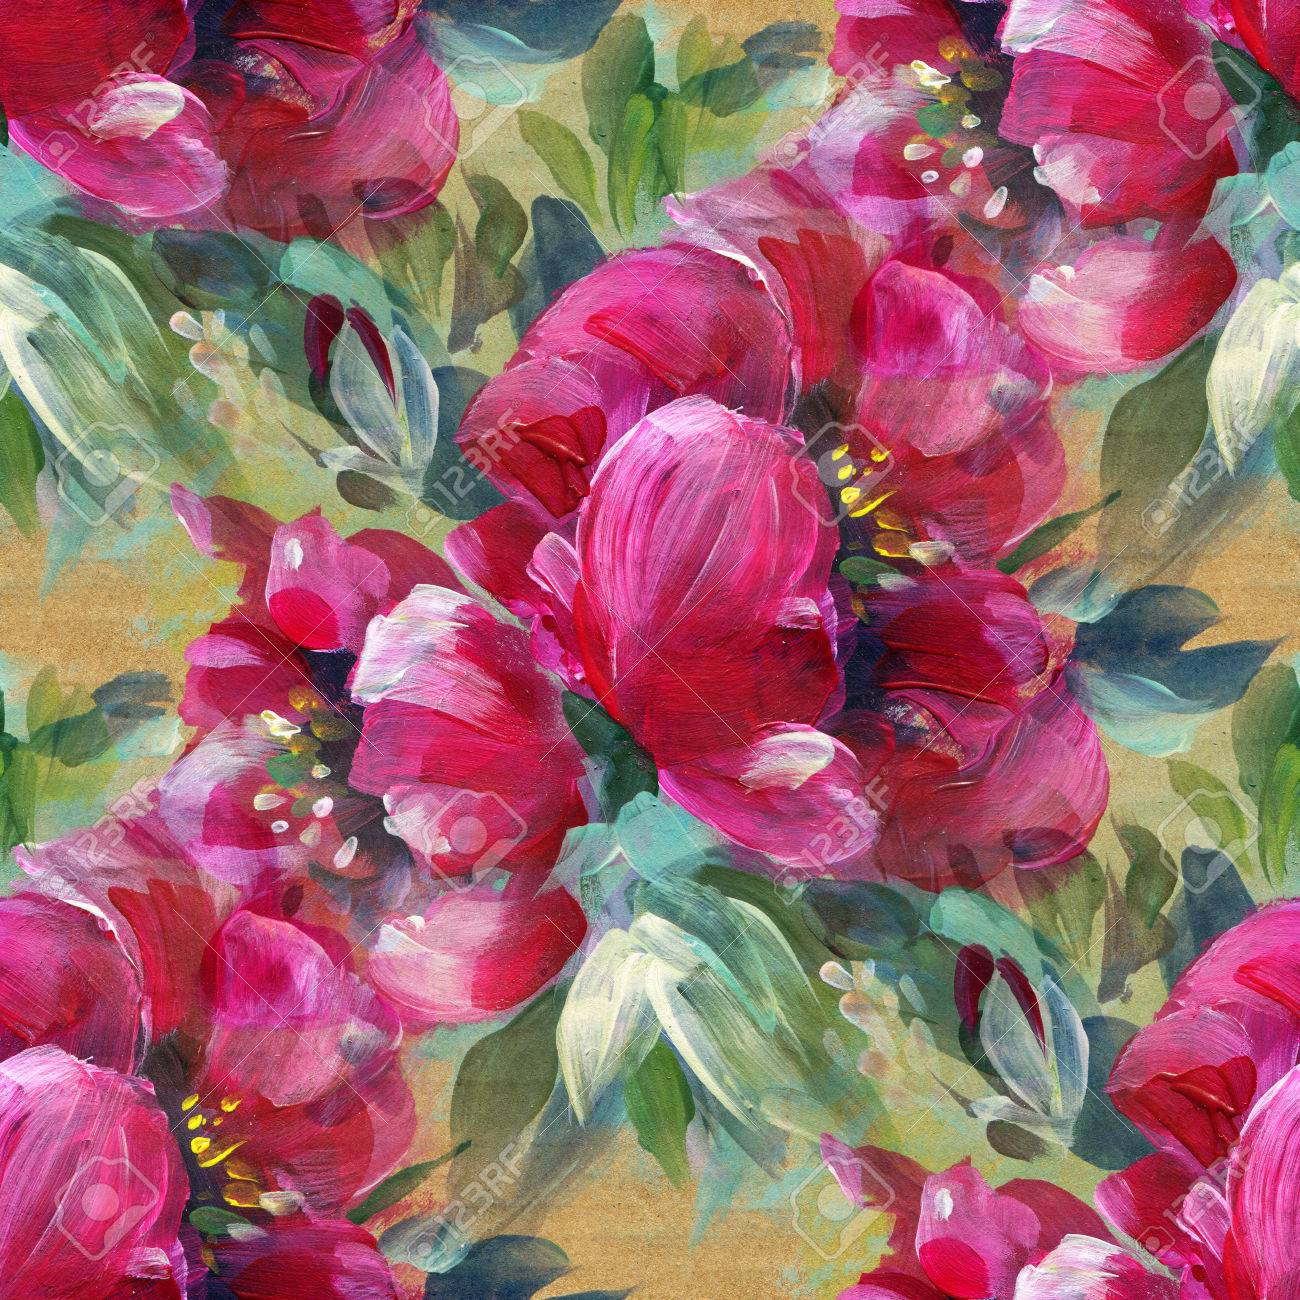 Colorful Background With Red Flowers, Acrylic Painting. Seamless ...